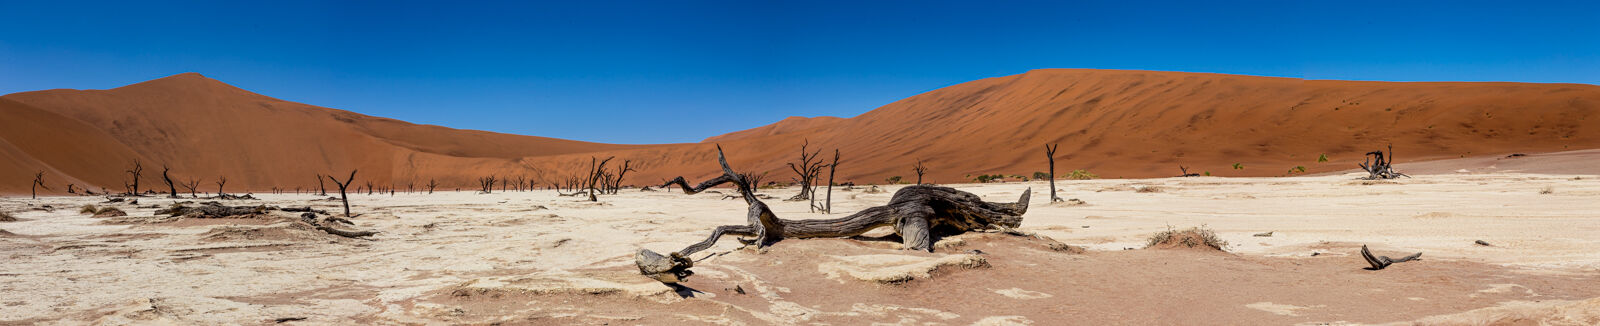 The Deadvlei at Sussusvlei.